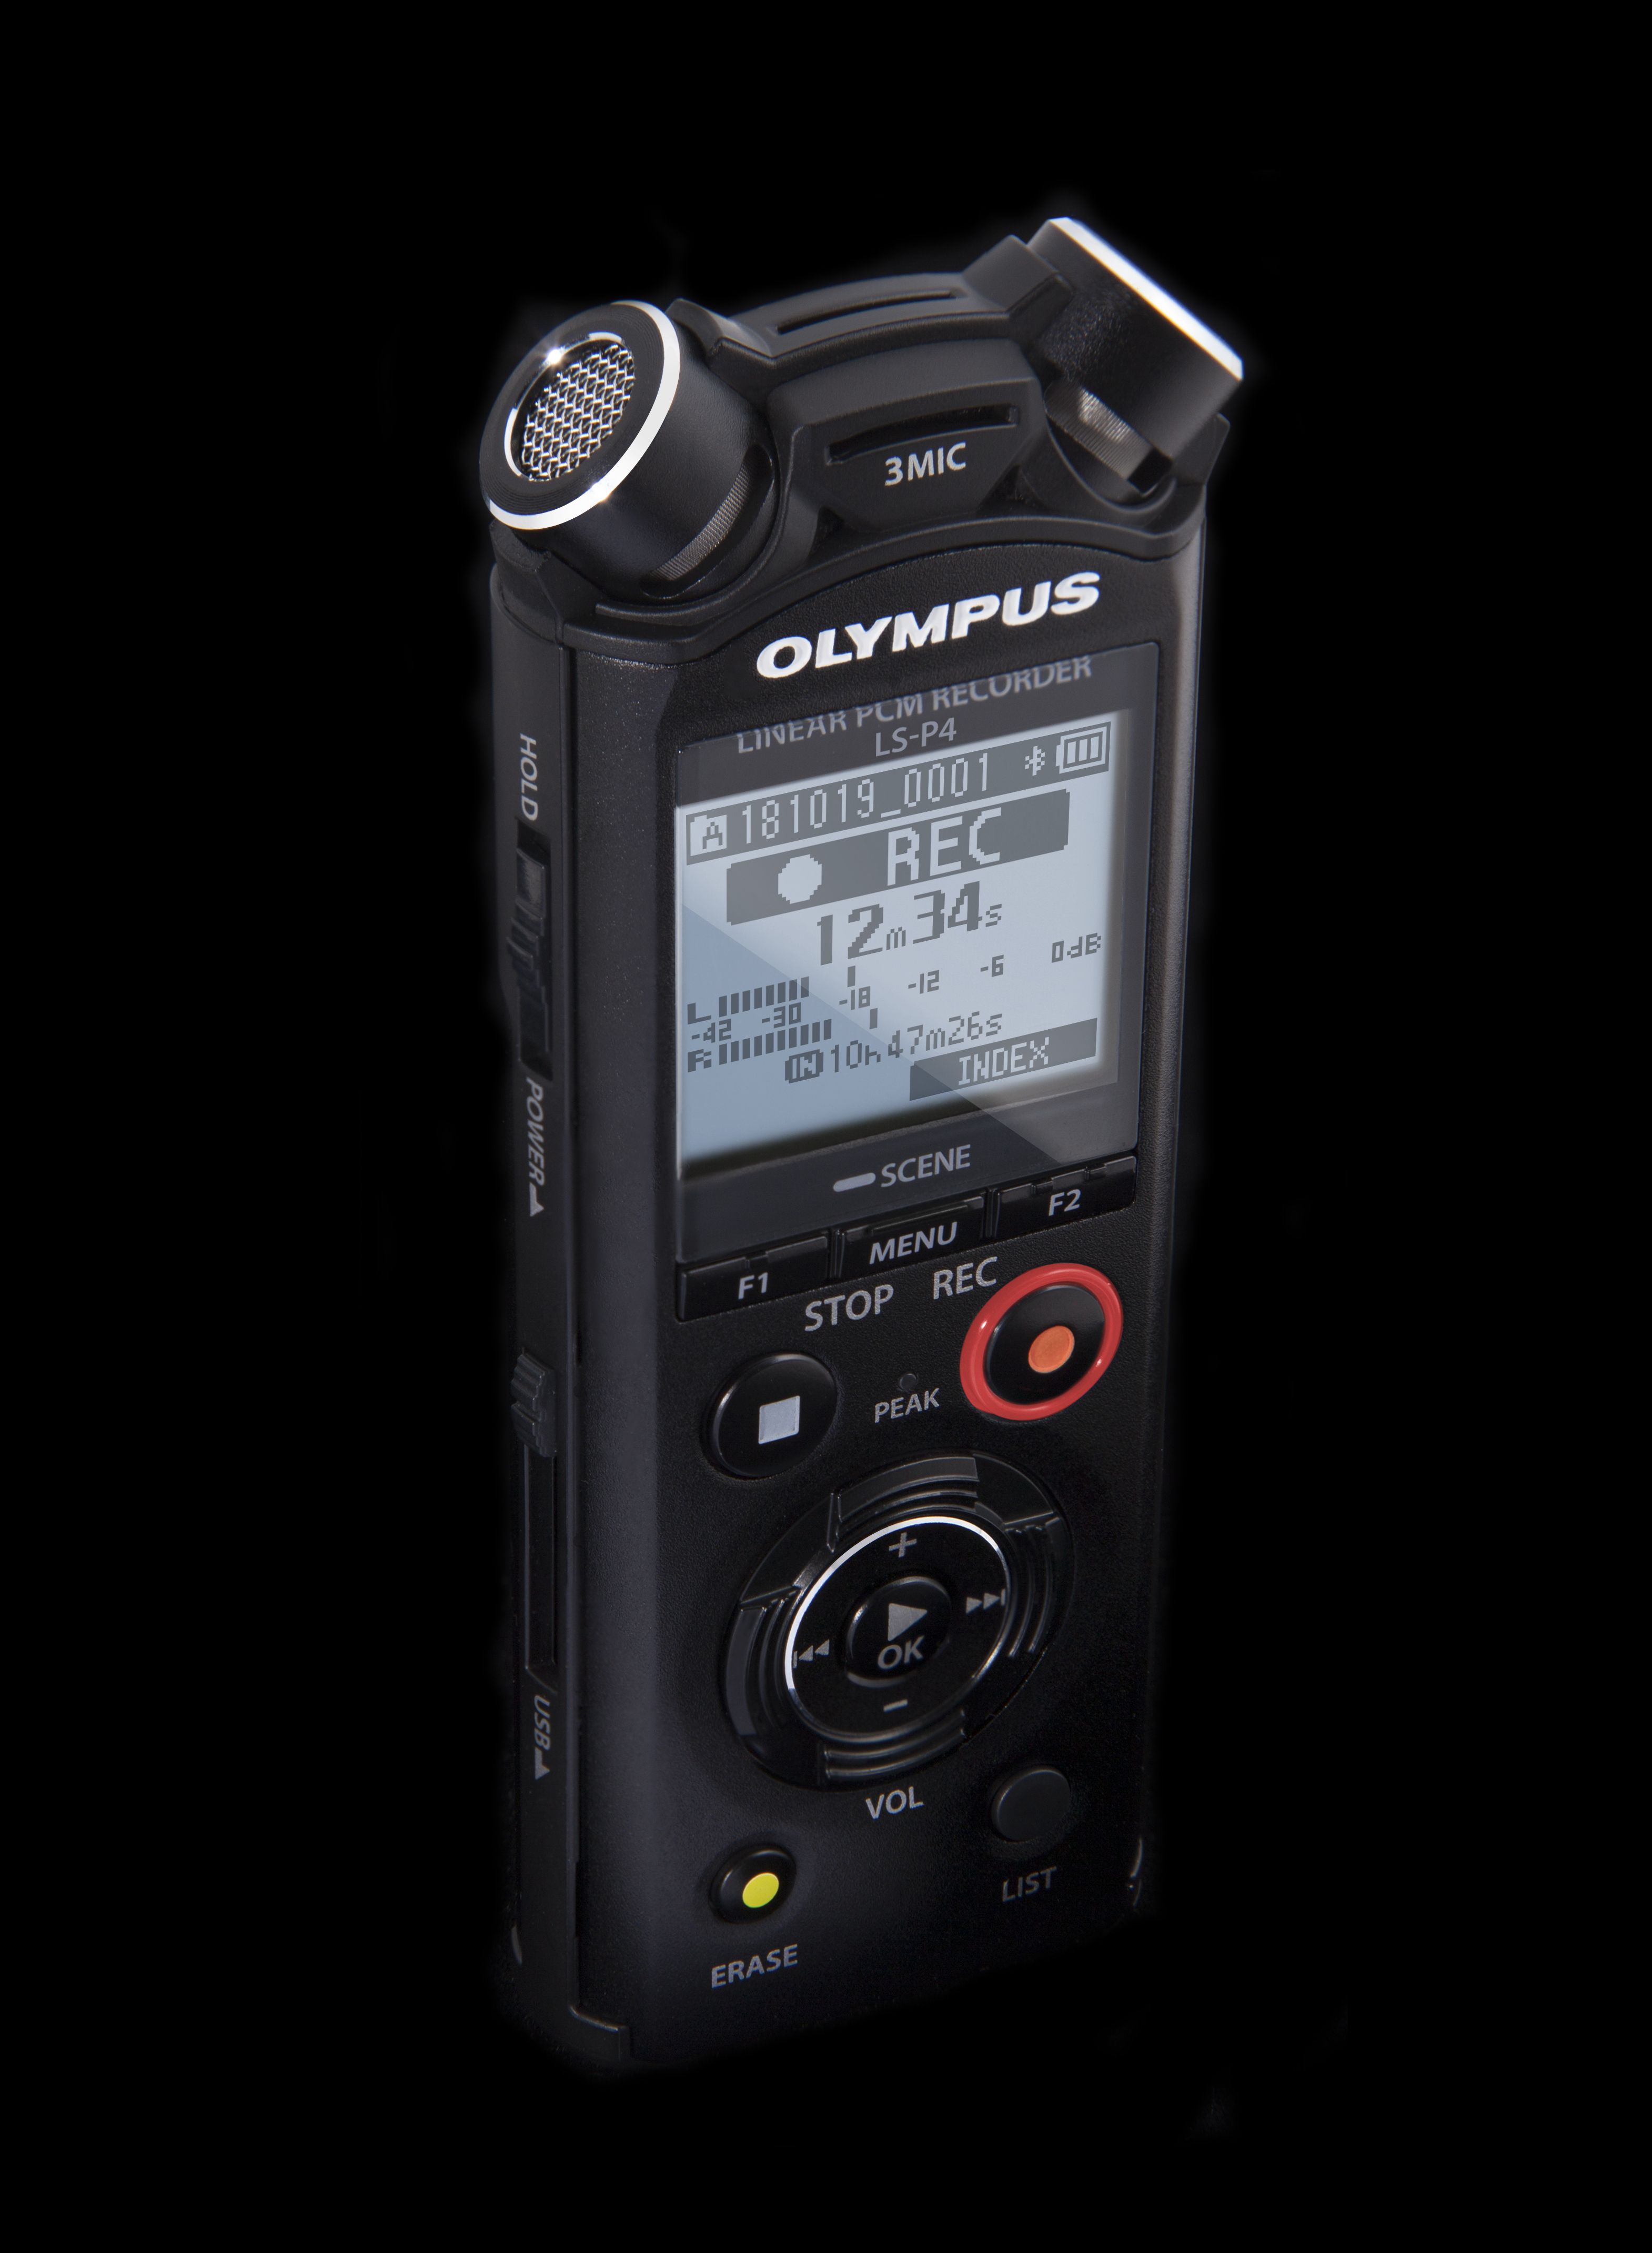 New Olympus LS-P4 features 3 microphones, FLAC recording